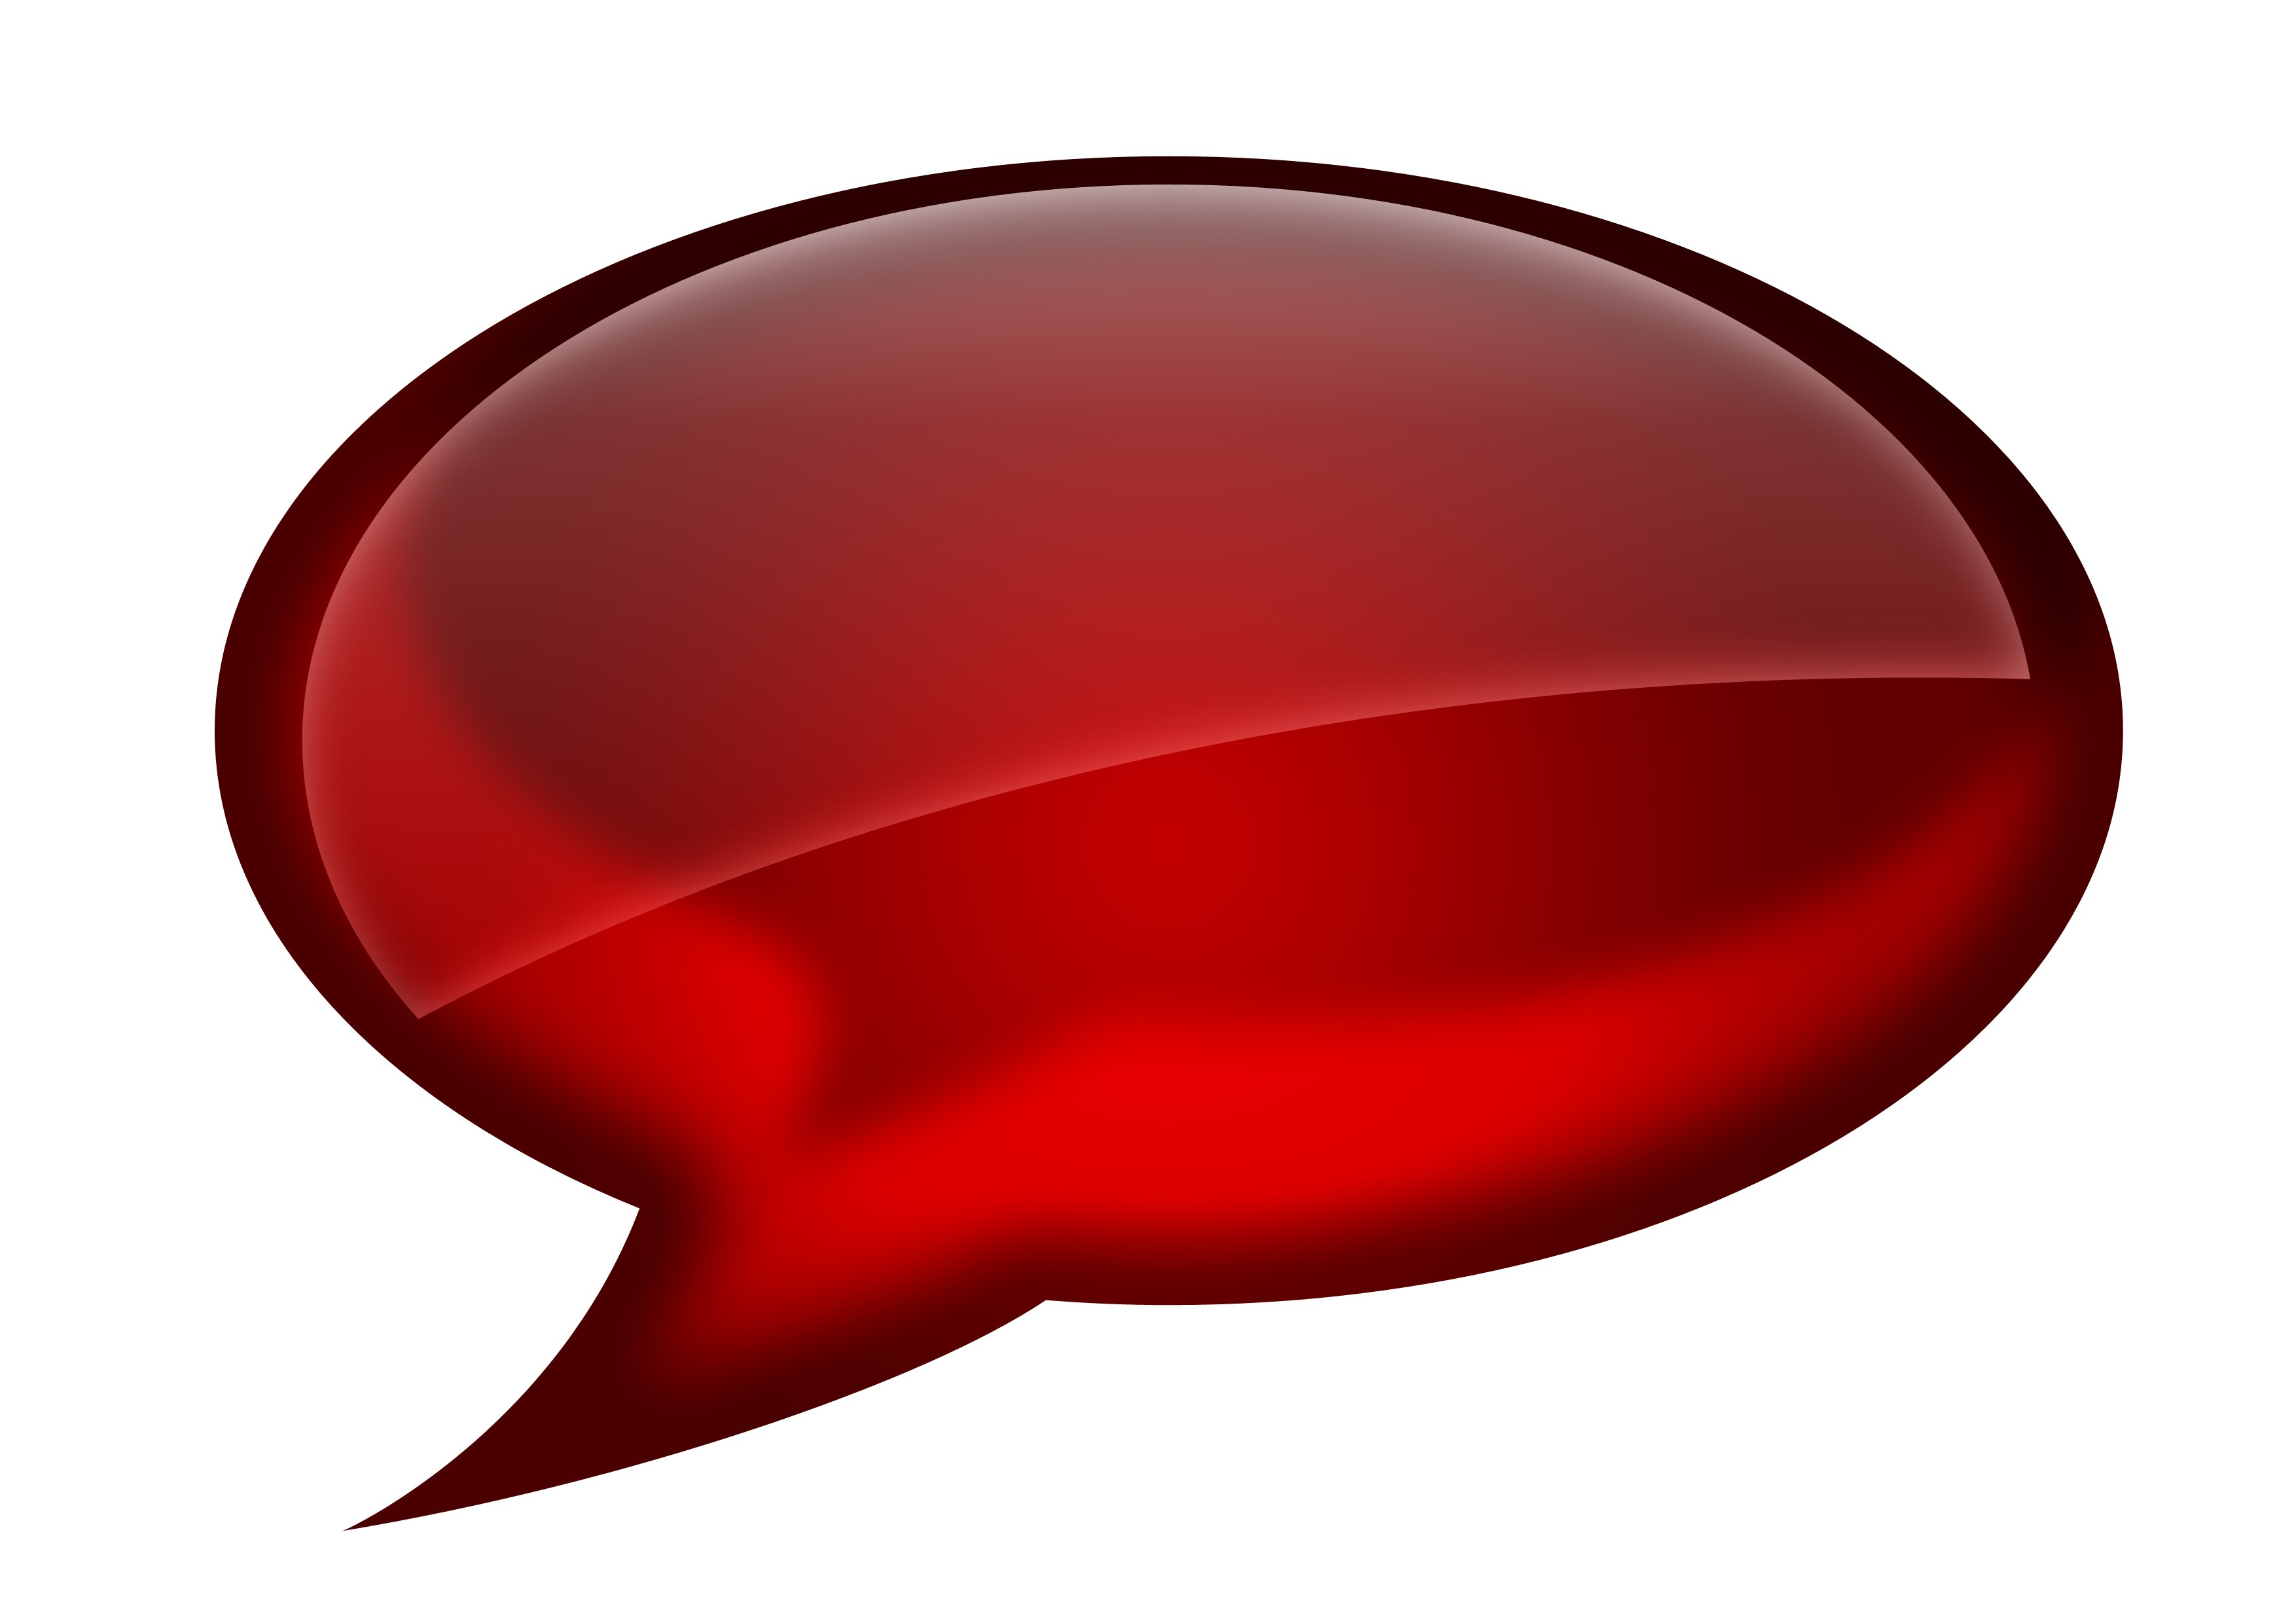 7 Red Chat Icon Images